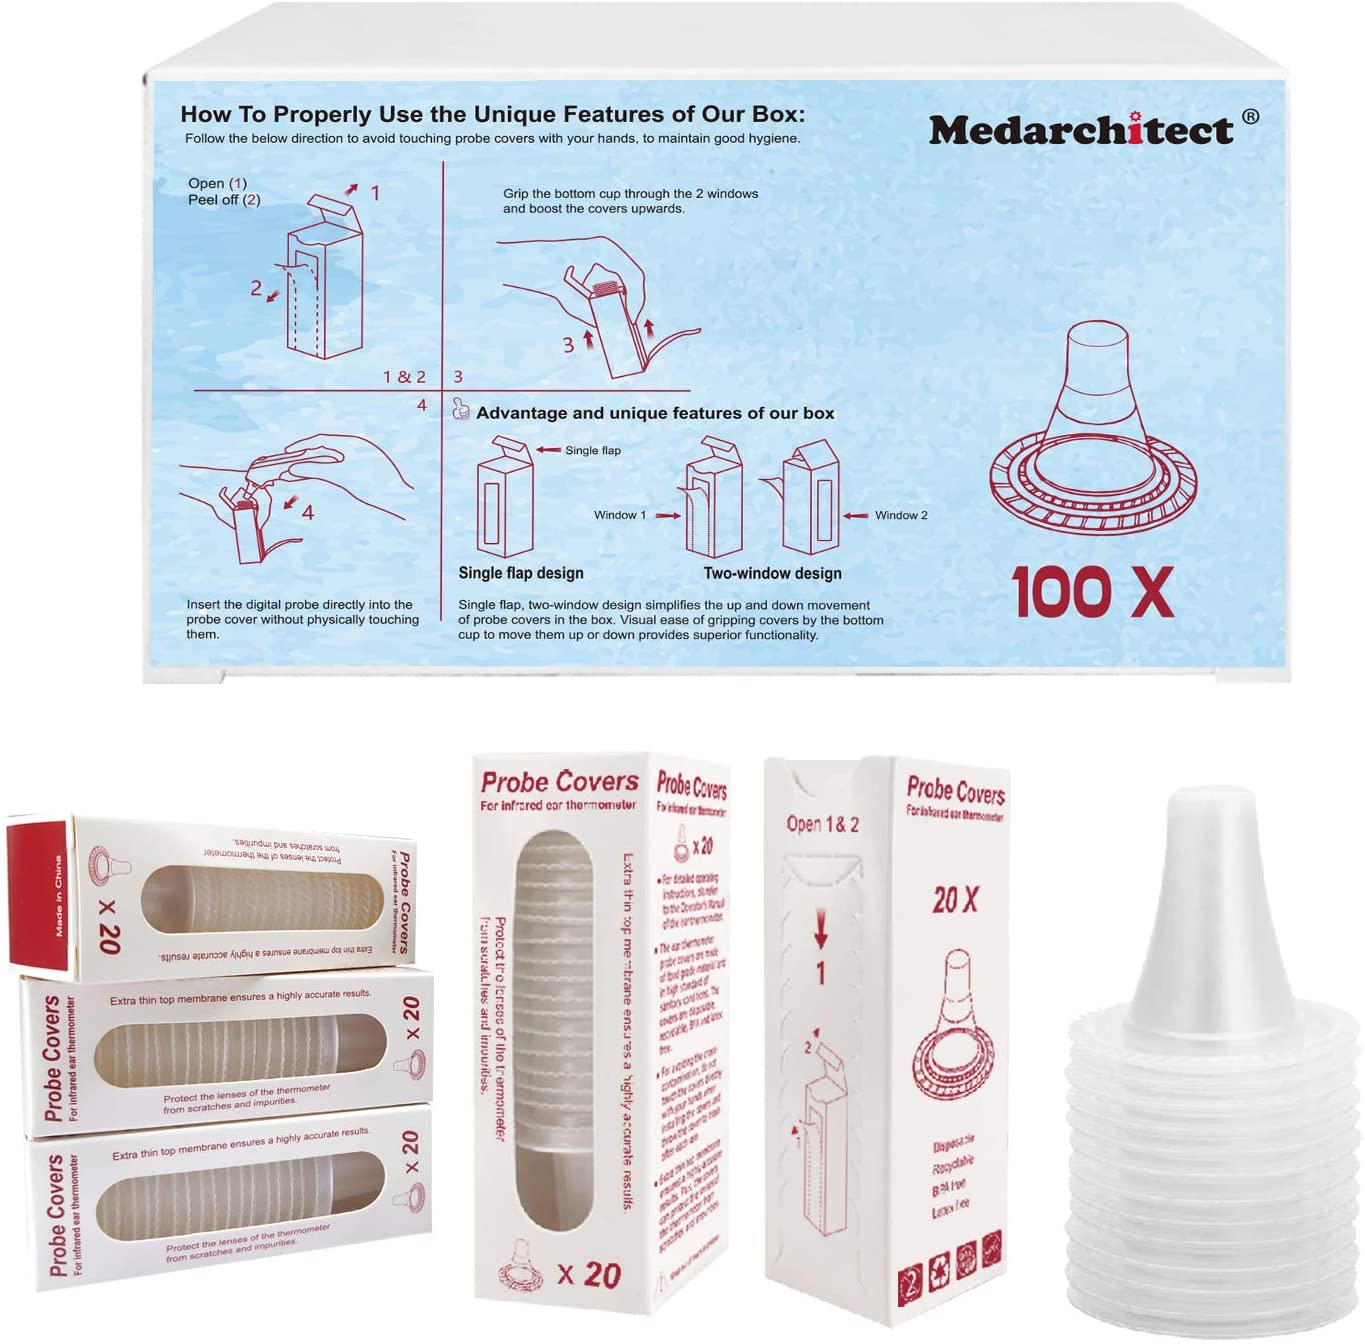 Medarchitect 100 Covers Ear Thermometer Probe Covers Lens Filters, Refill Caps for All Braun ThermoScan Models and Other Types of Digital Thermometers Disposable Covers